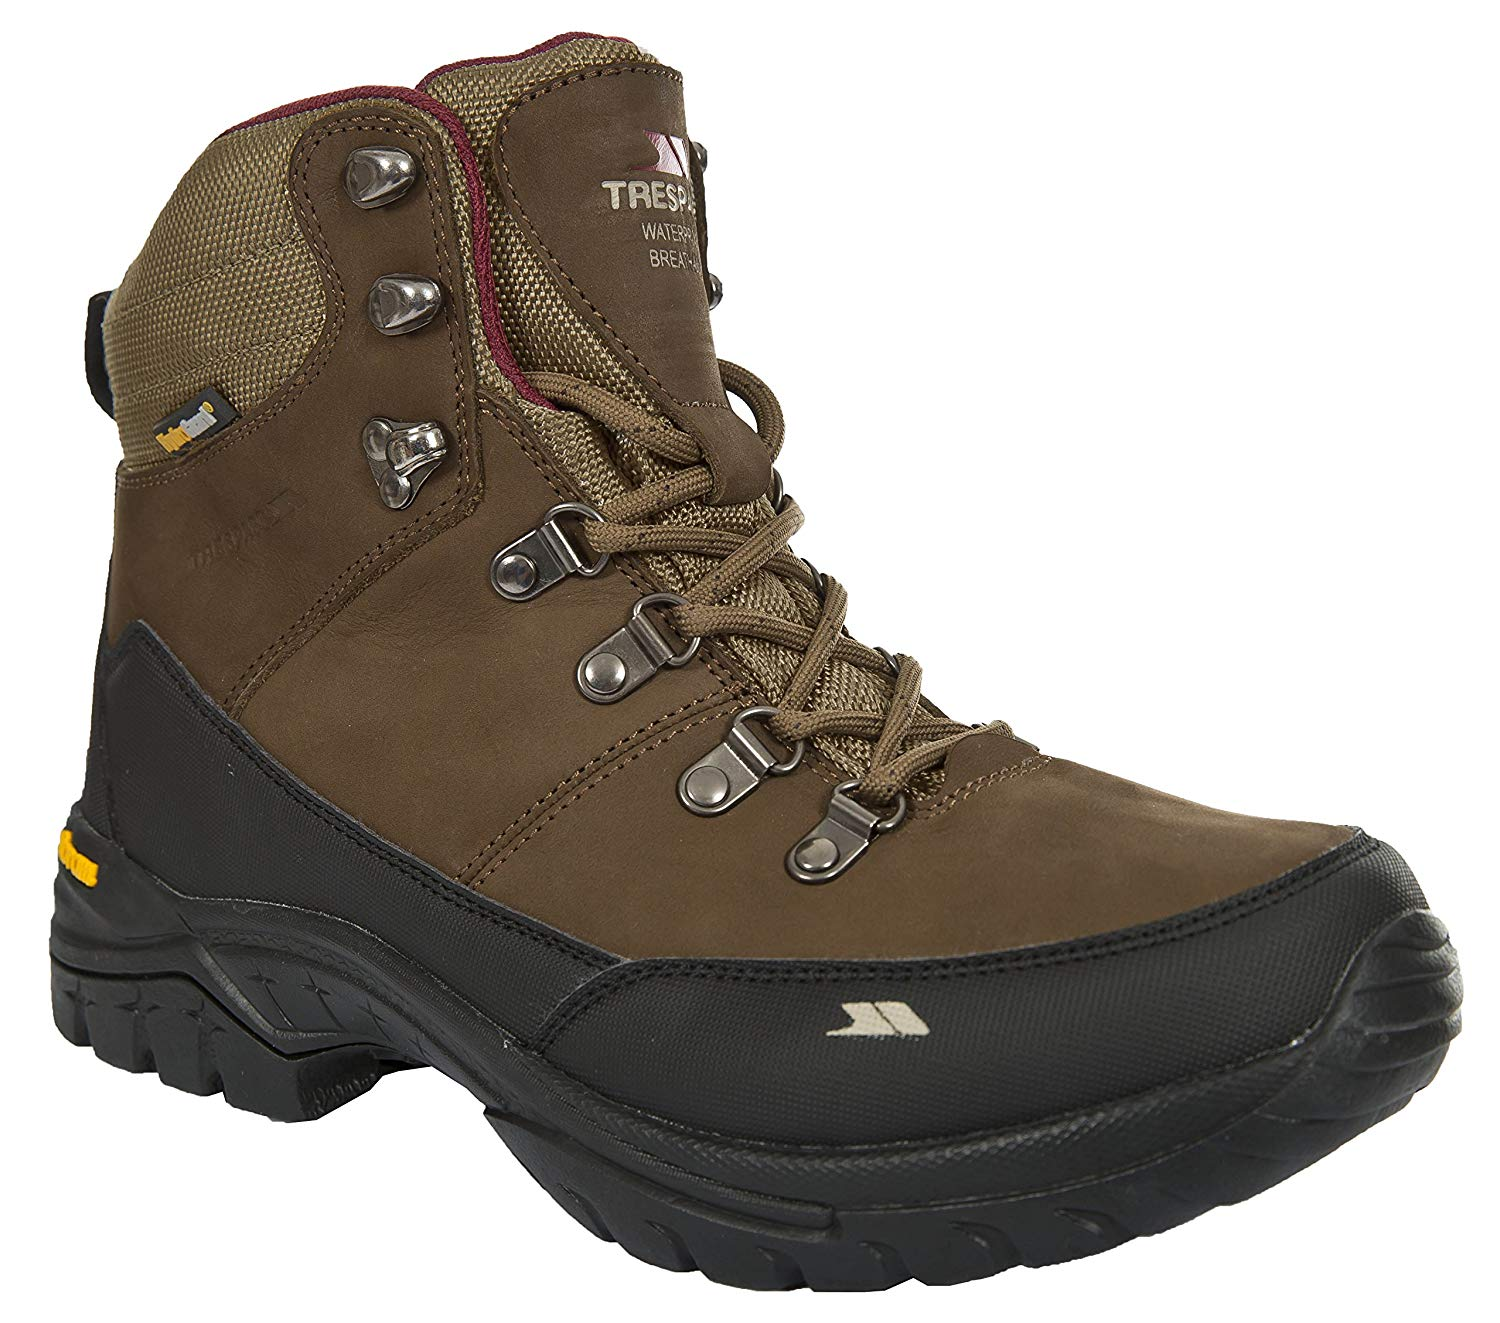 d038227ade2 Get Quotations · Trespass Kenter Women s Leather Walking Waterproof Boots  Mid Cut Hiking Boots